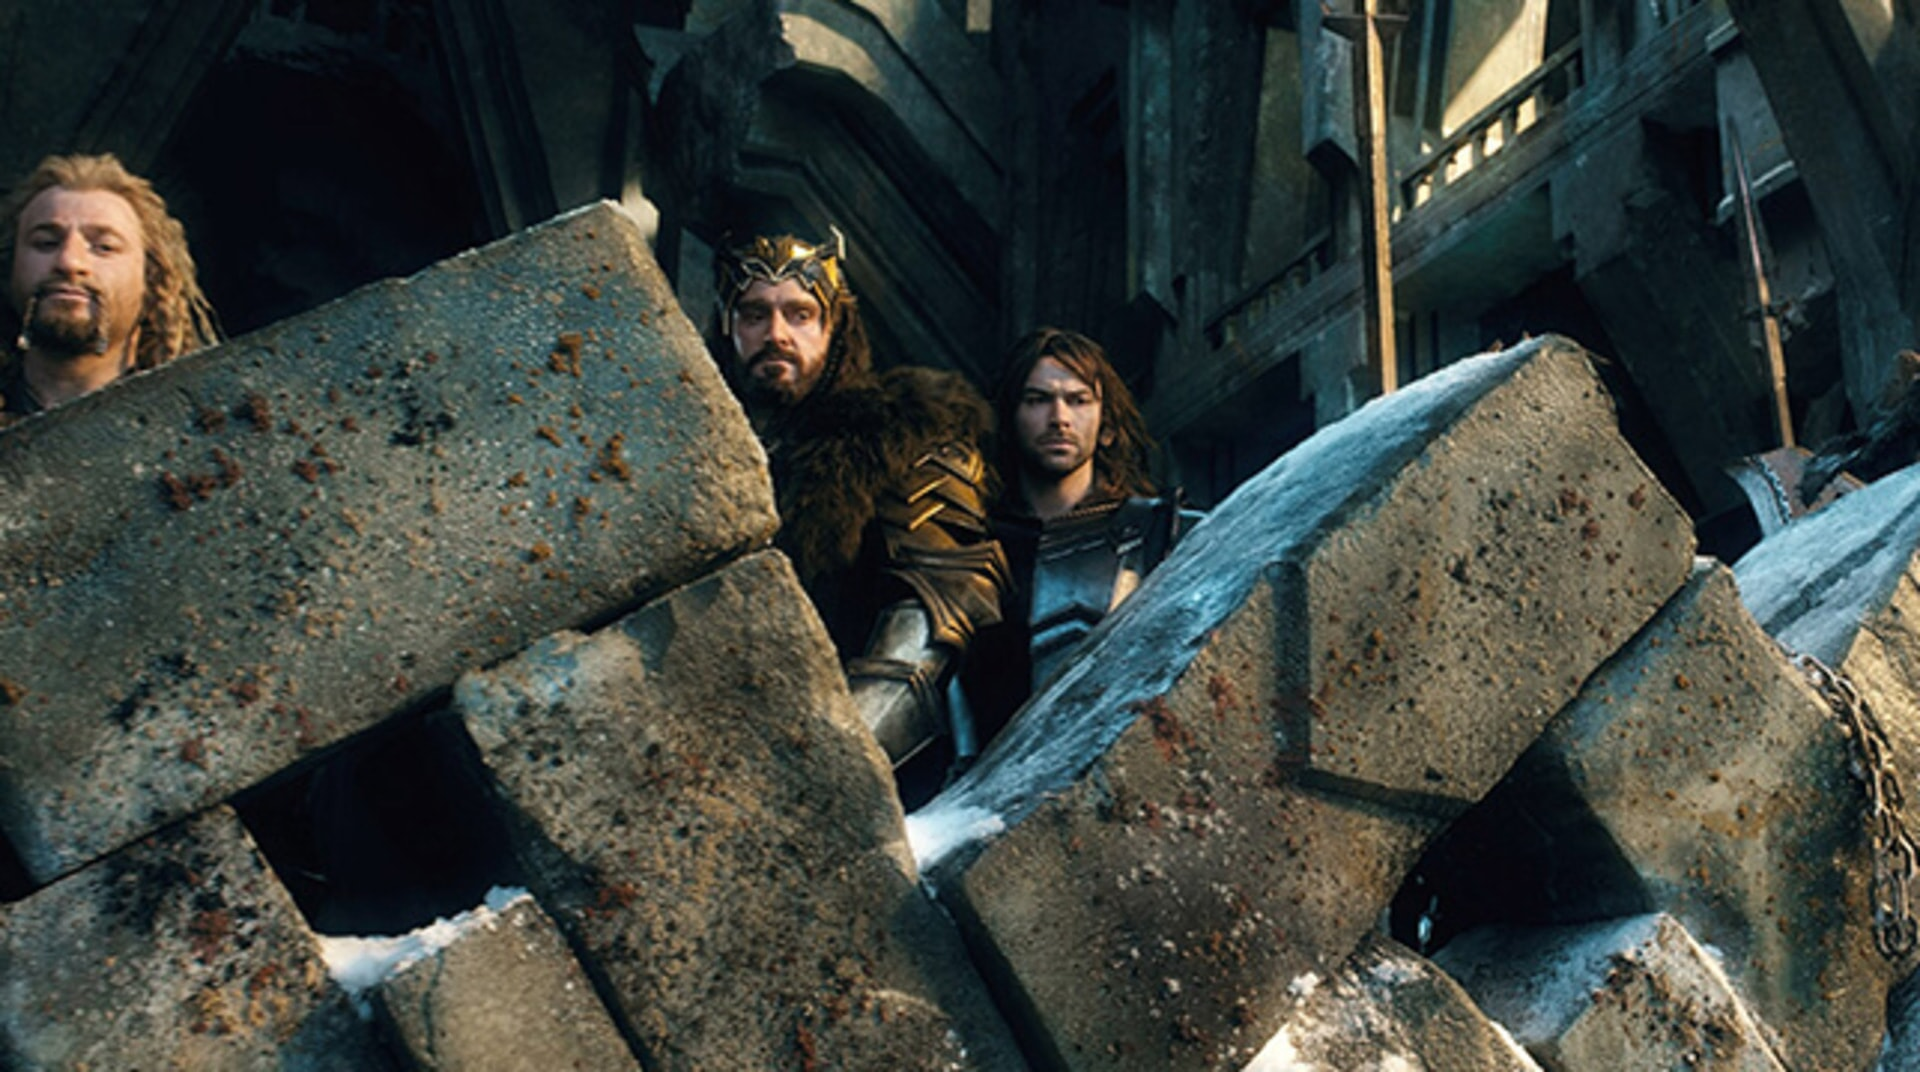 The Hobbit: The Battle of the Five Armies - Image 43